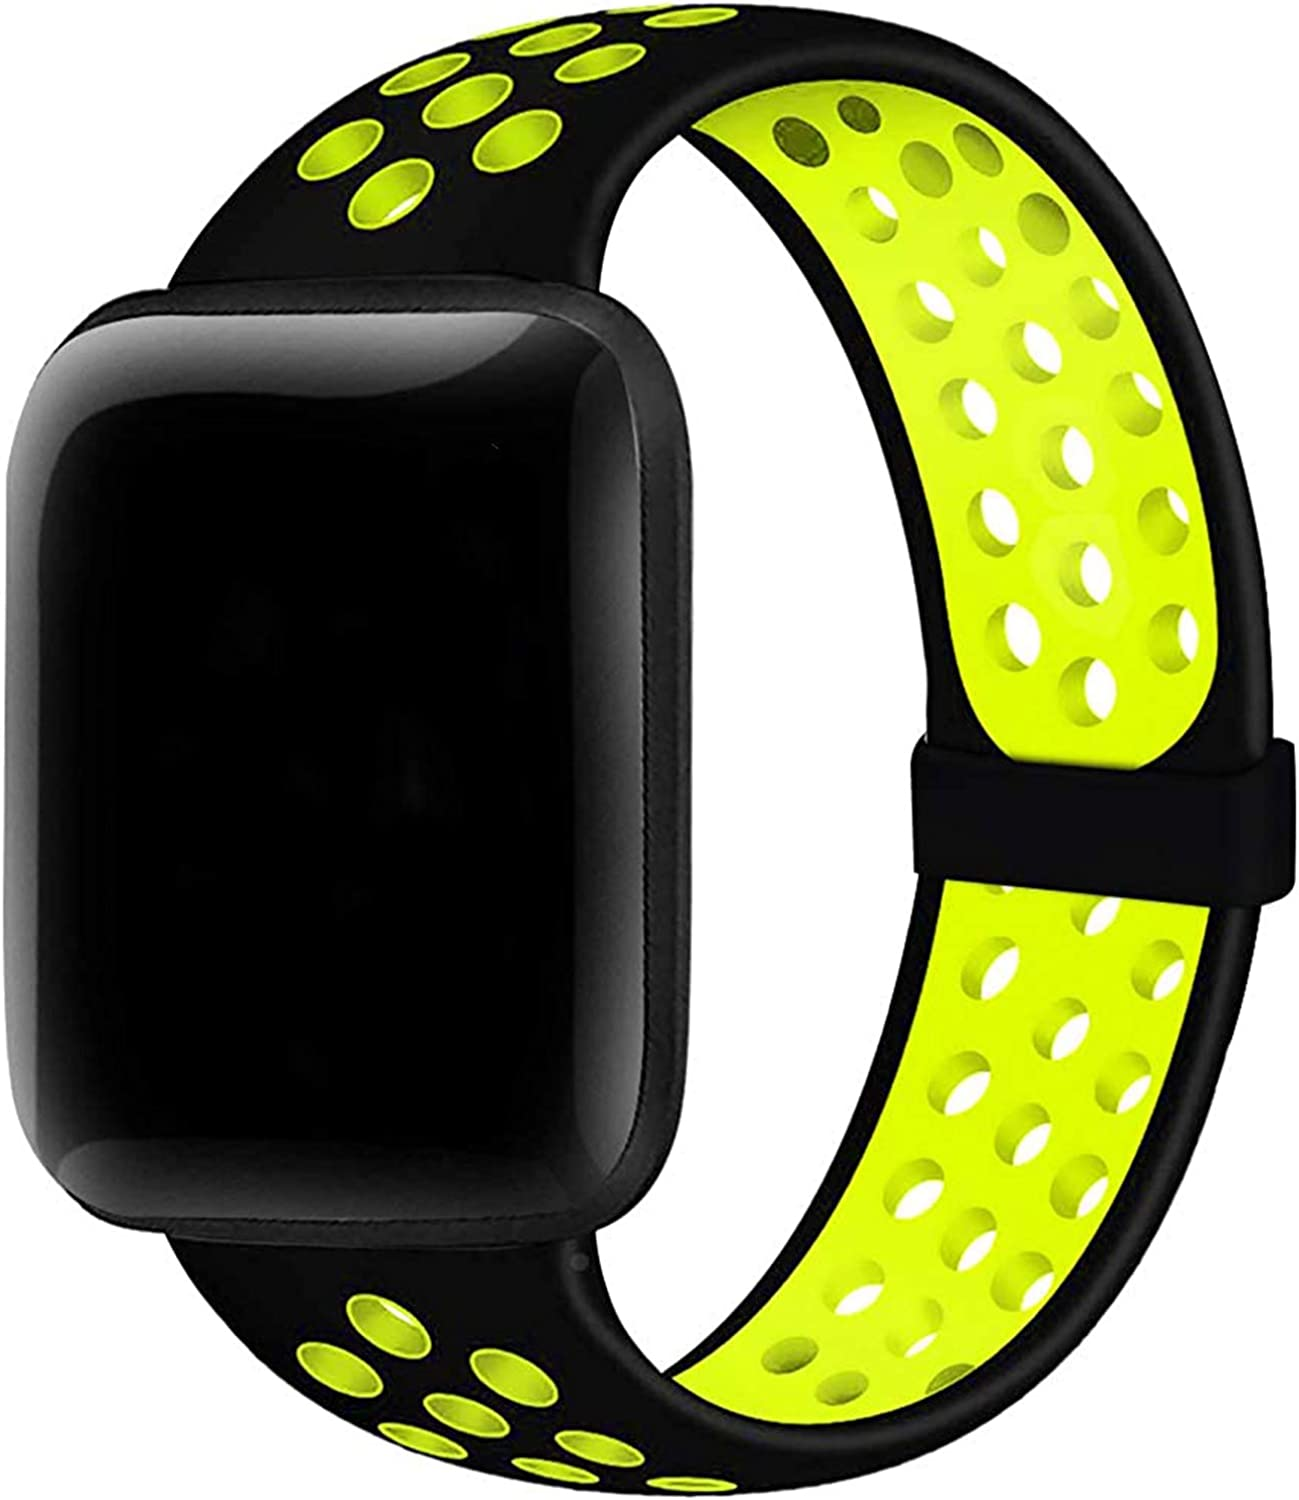 Silicone Band Compatible with Apple Watch Bands 38mm 40mm 42mm 44mm S/M M/L, Soft Silicone Strap Breathable Holes Workout Sport Replacement Strap Compatible for iWatch Band Series 1/2/3/4/5/6 SE Women Men